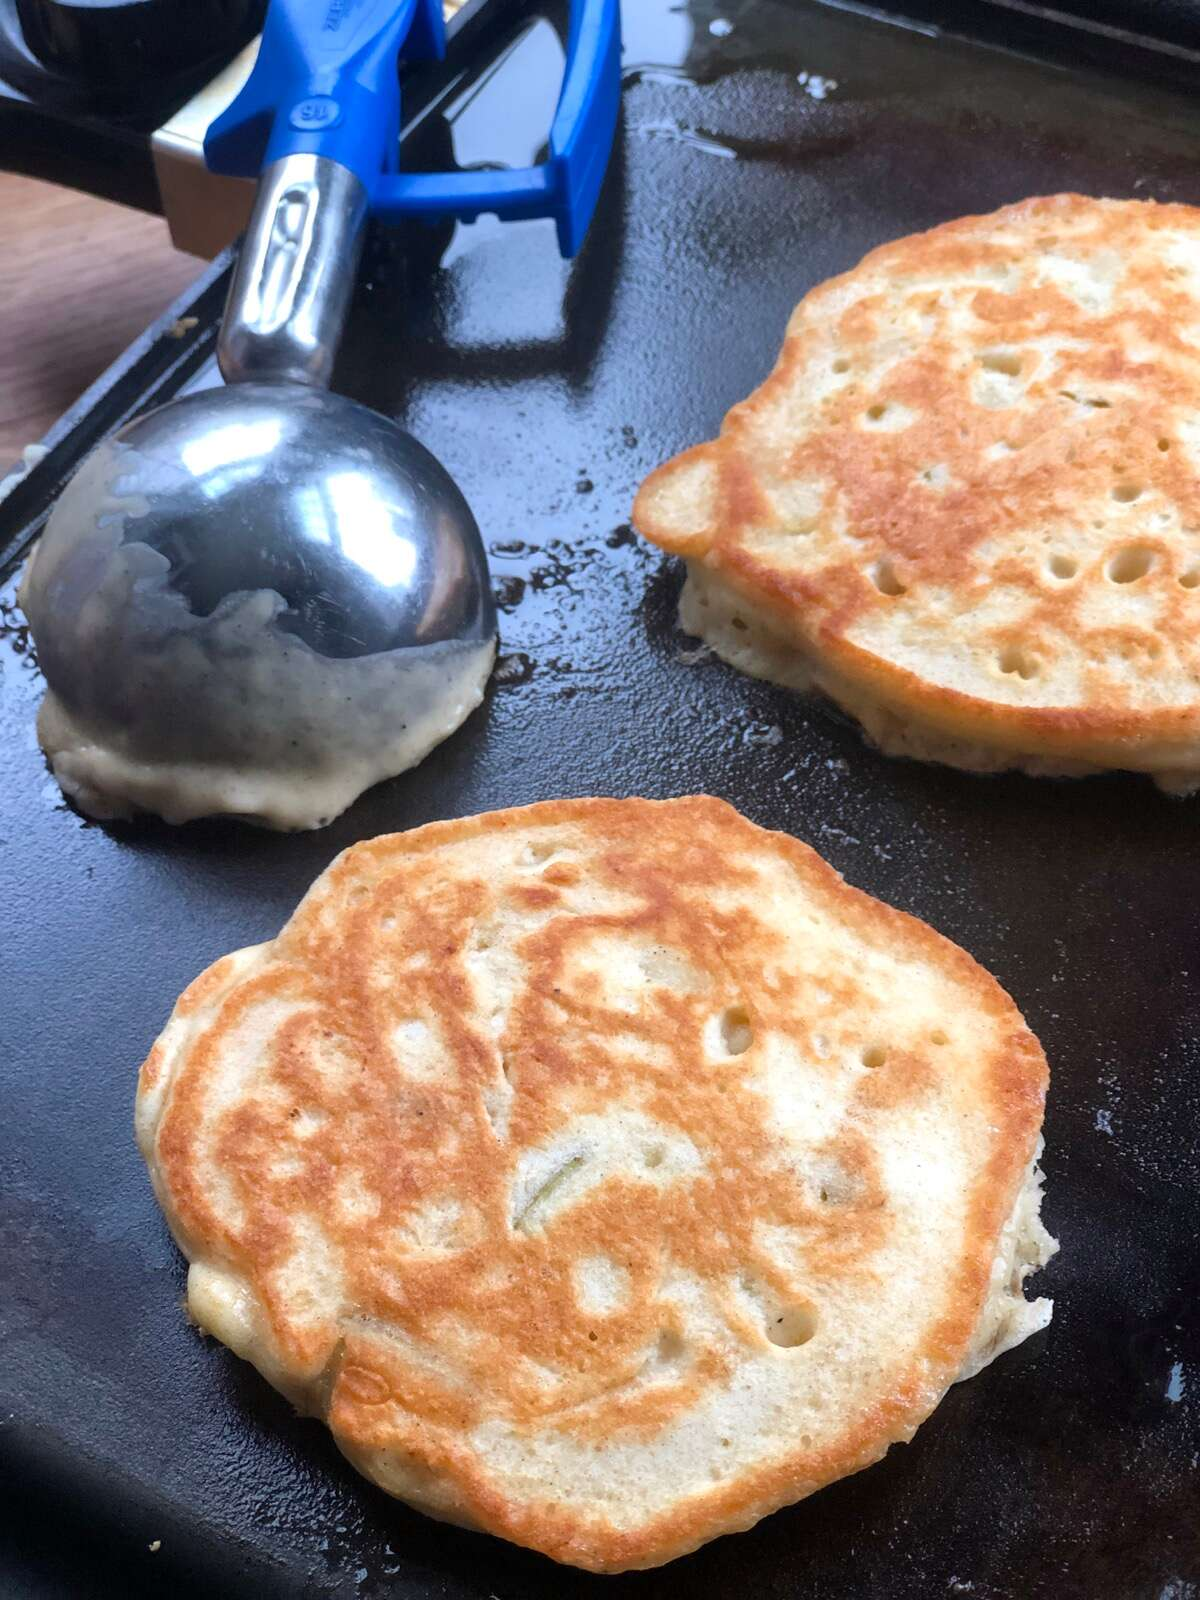 Two pancakes cooking on a griddle, muffin scoop on the side.